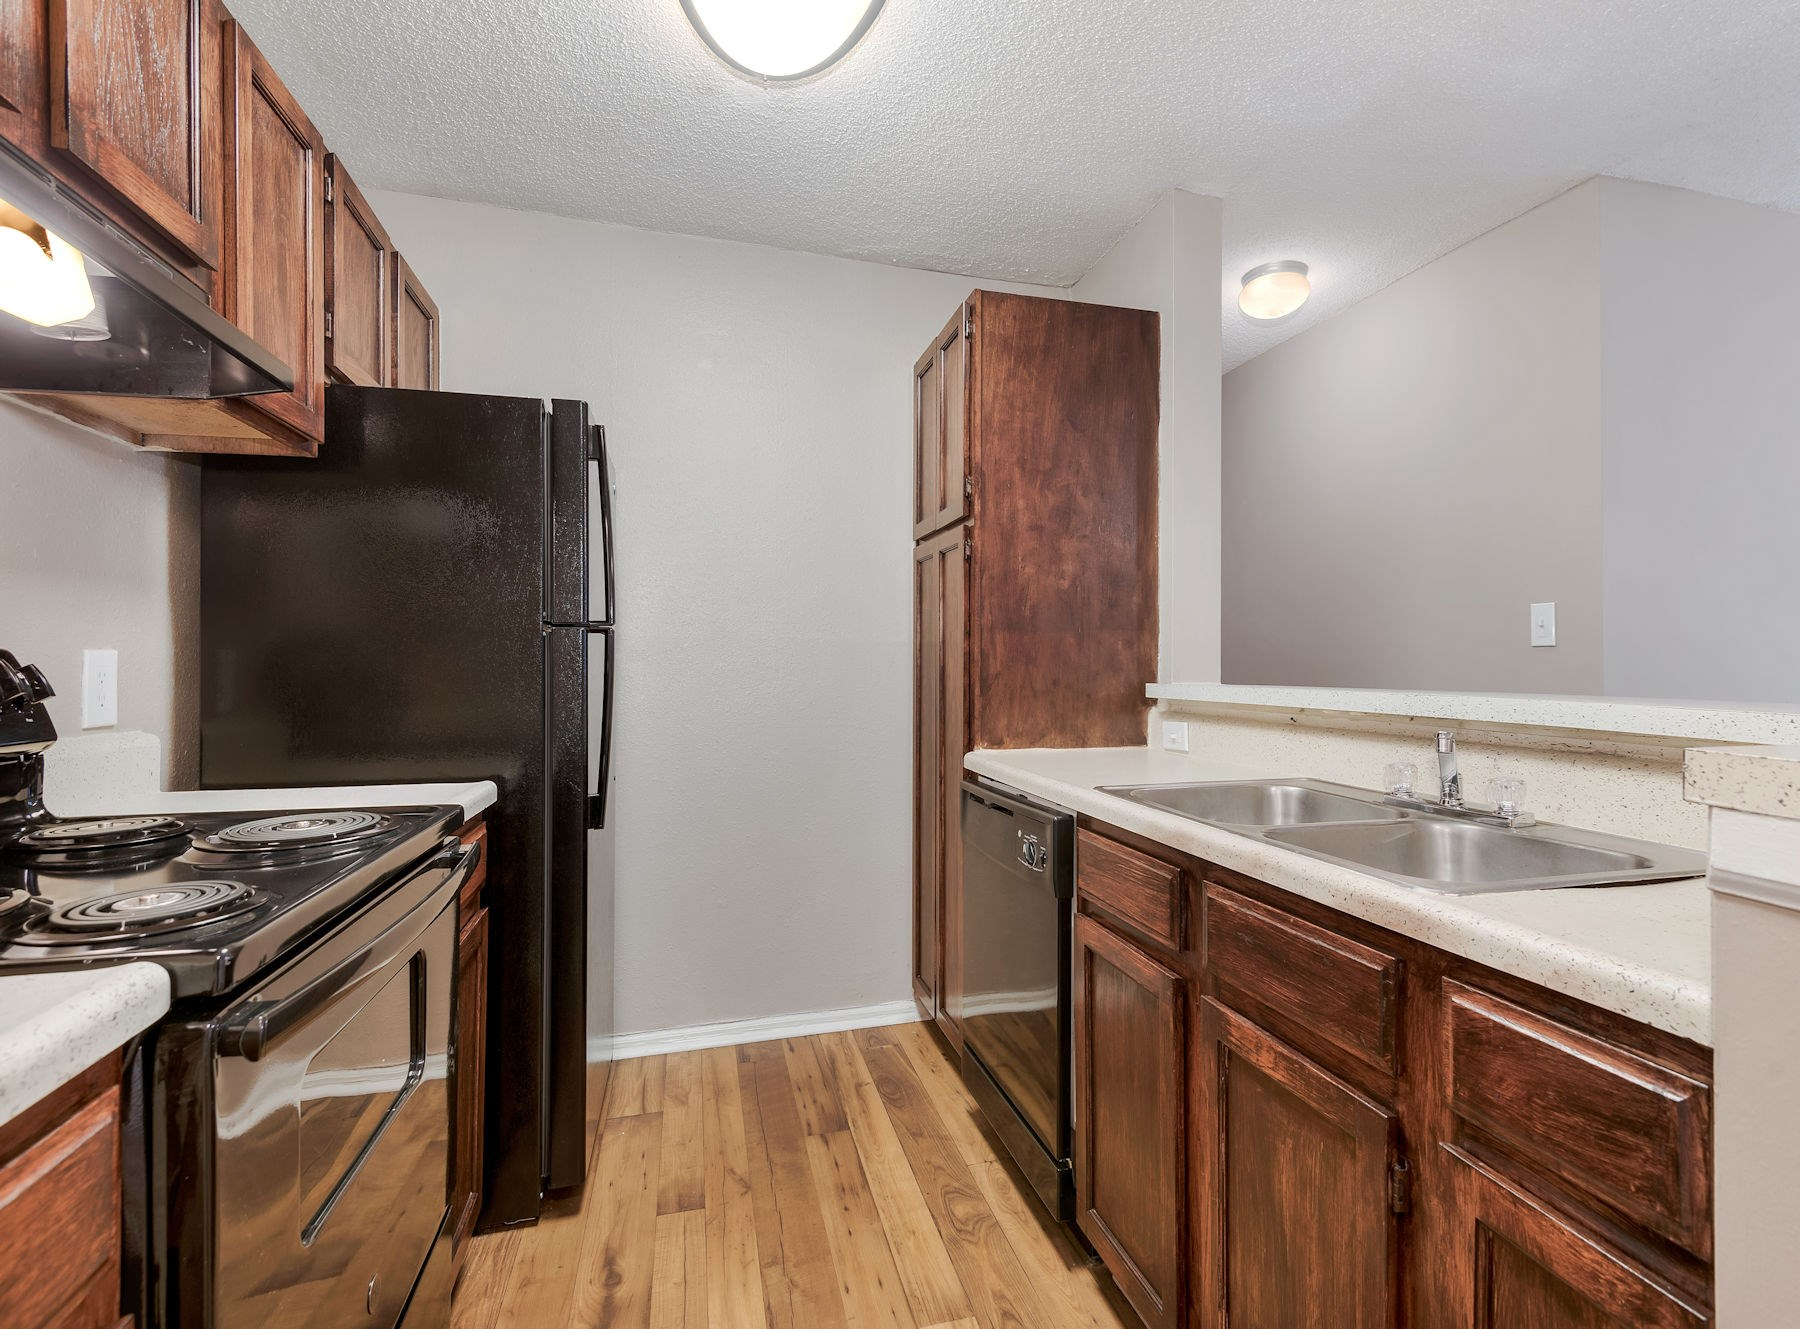 Model Kitchen With Wood Cabinets & Black Appliances